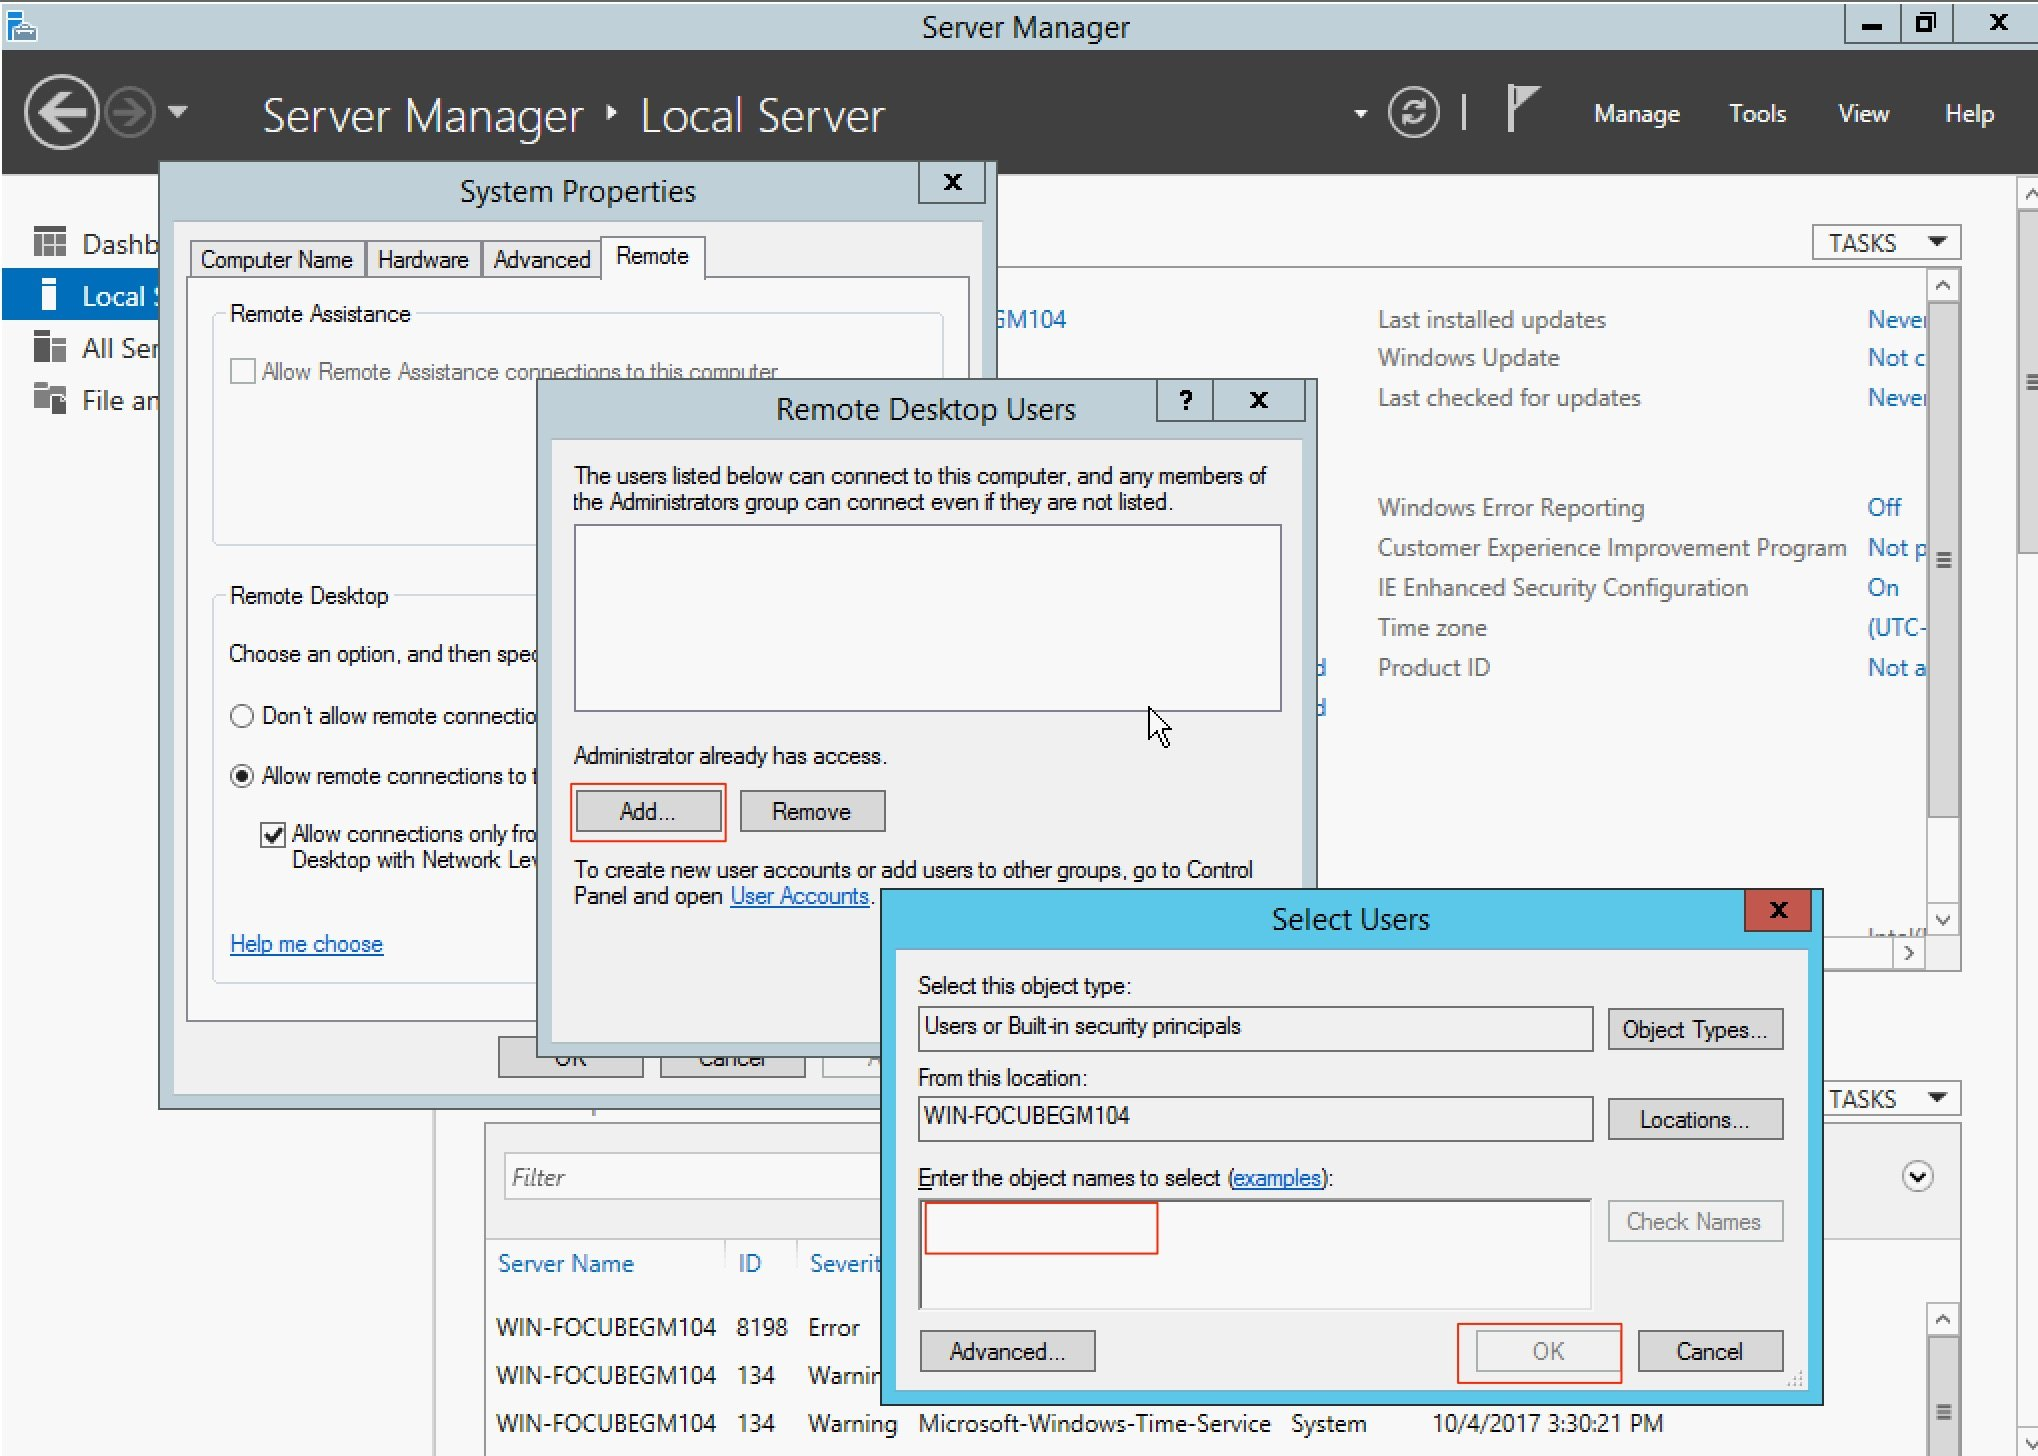 kích hoạt remote desktop trên windows server 2012 - allow remote connections